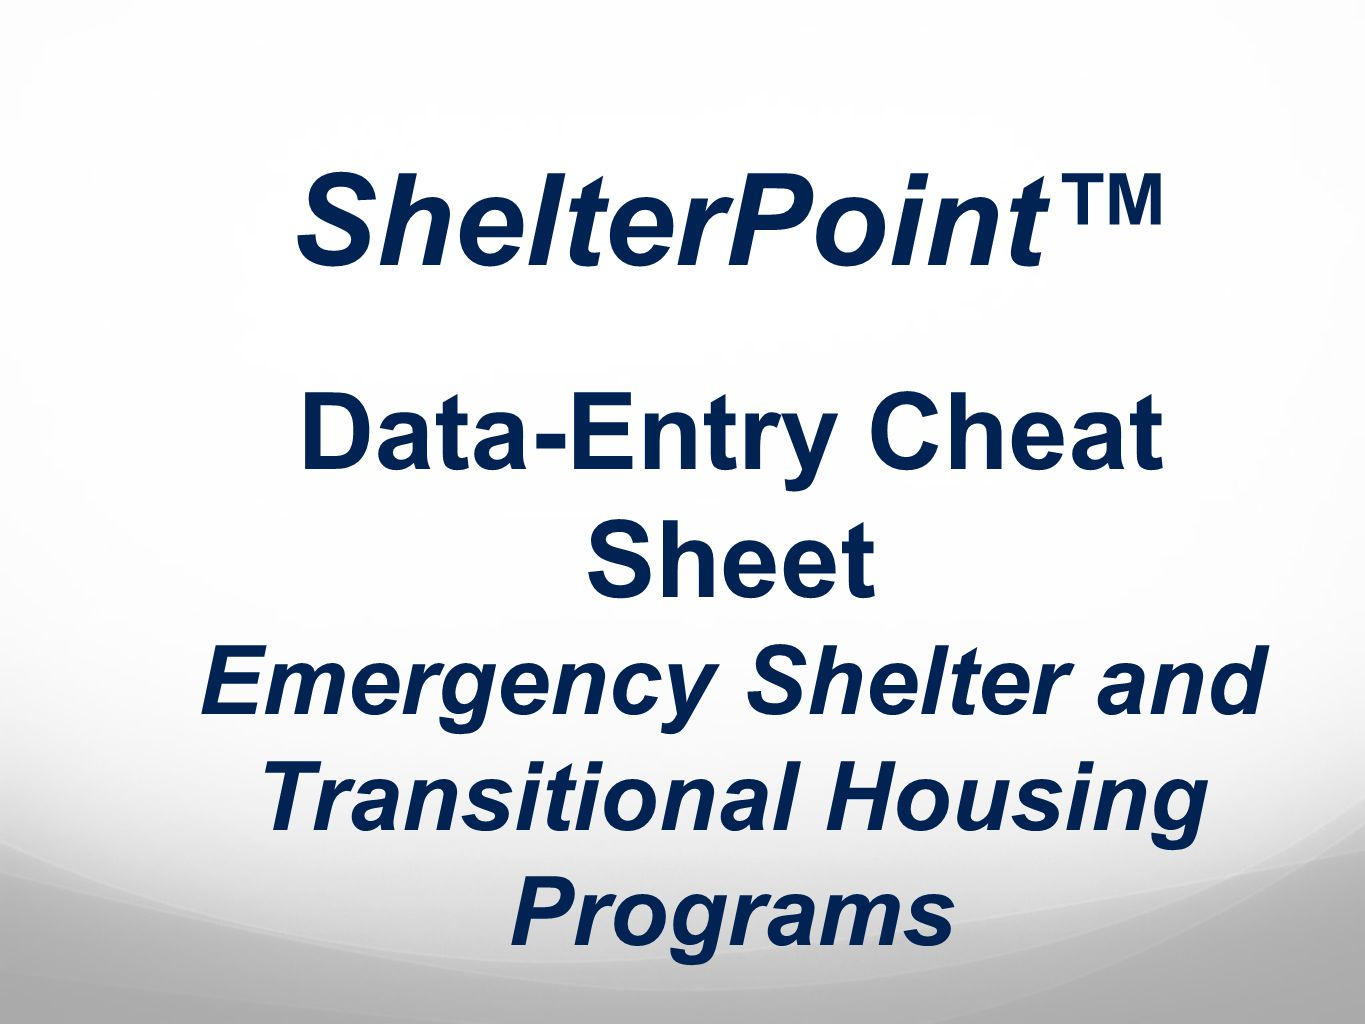 ShelterPoint™ Data-Entry Cheat Sheet